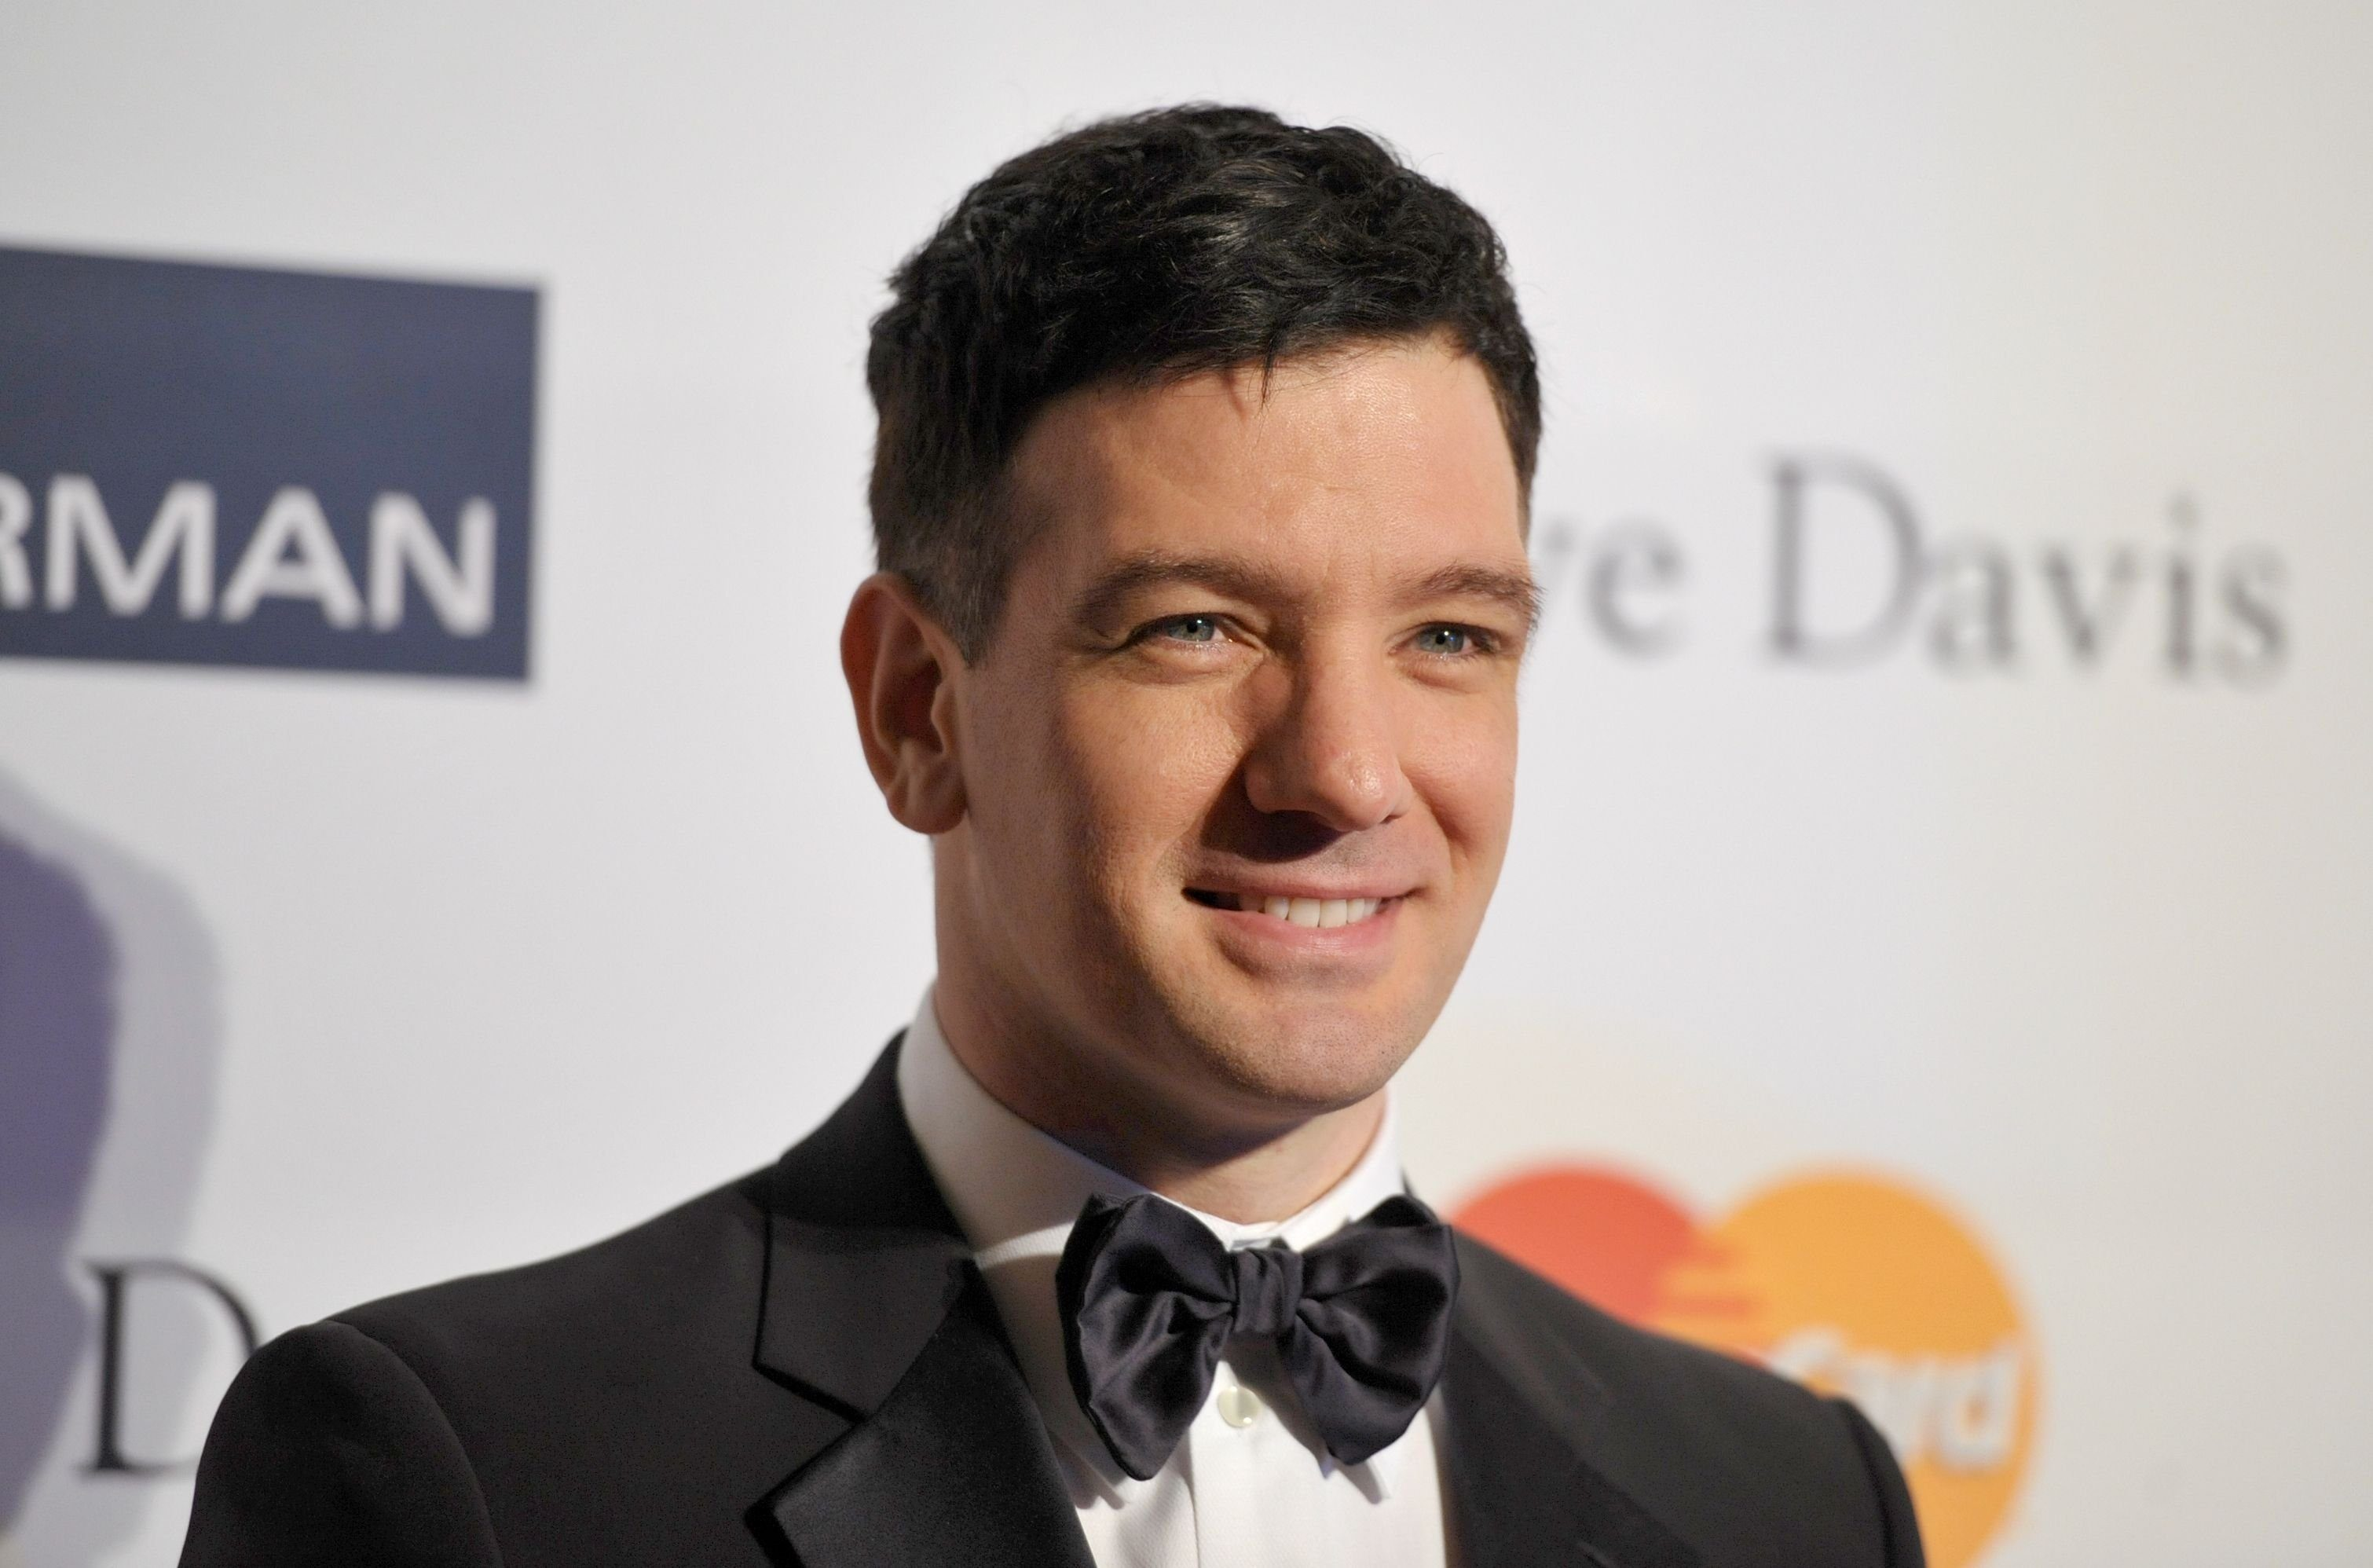 Mandatory Credit: Photo by John Shearer/Invision/AP/Shutterstock (9191631w) JC Chasez arrives at the Clive Davis Pre-GRAMMY Gala on in Beverly Hills, Calif 2013 Clive Davis Pre-GRAMMY Gala - Arrivals, Beverly Hills, USA - 9 Feb 2013